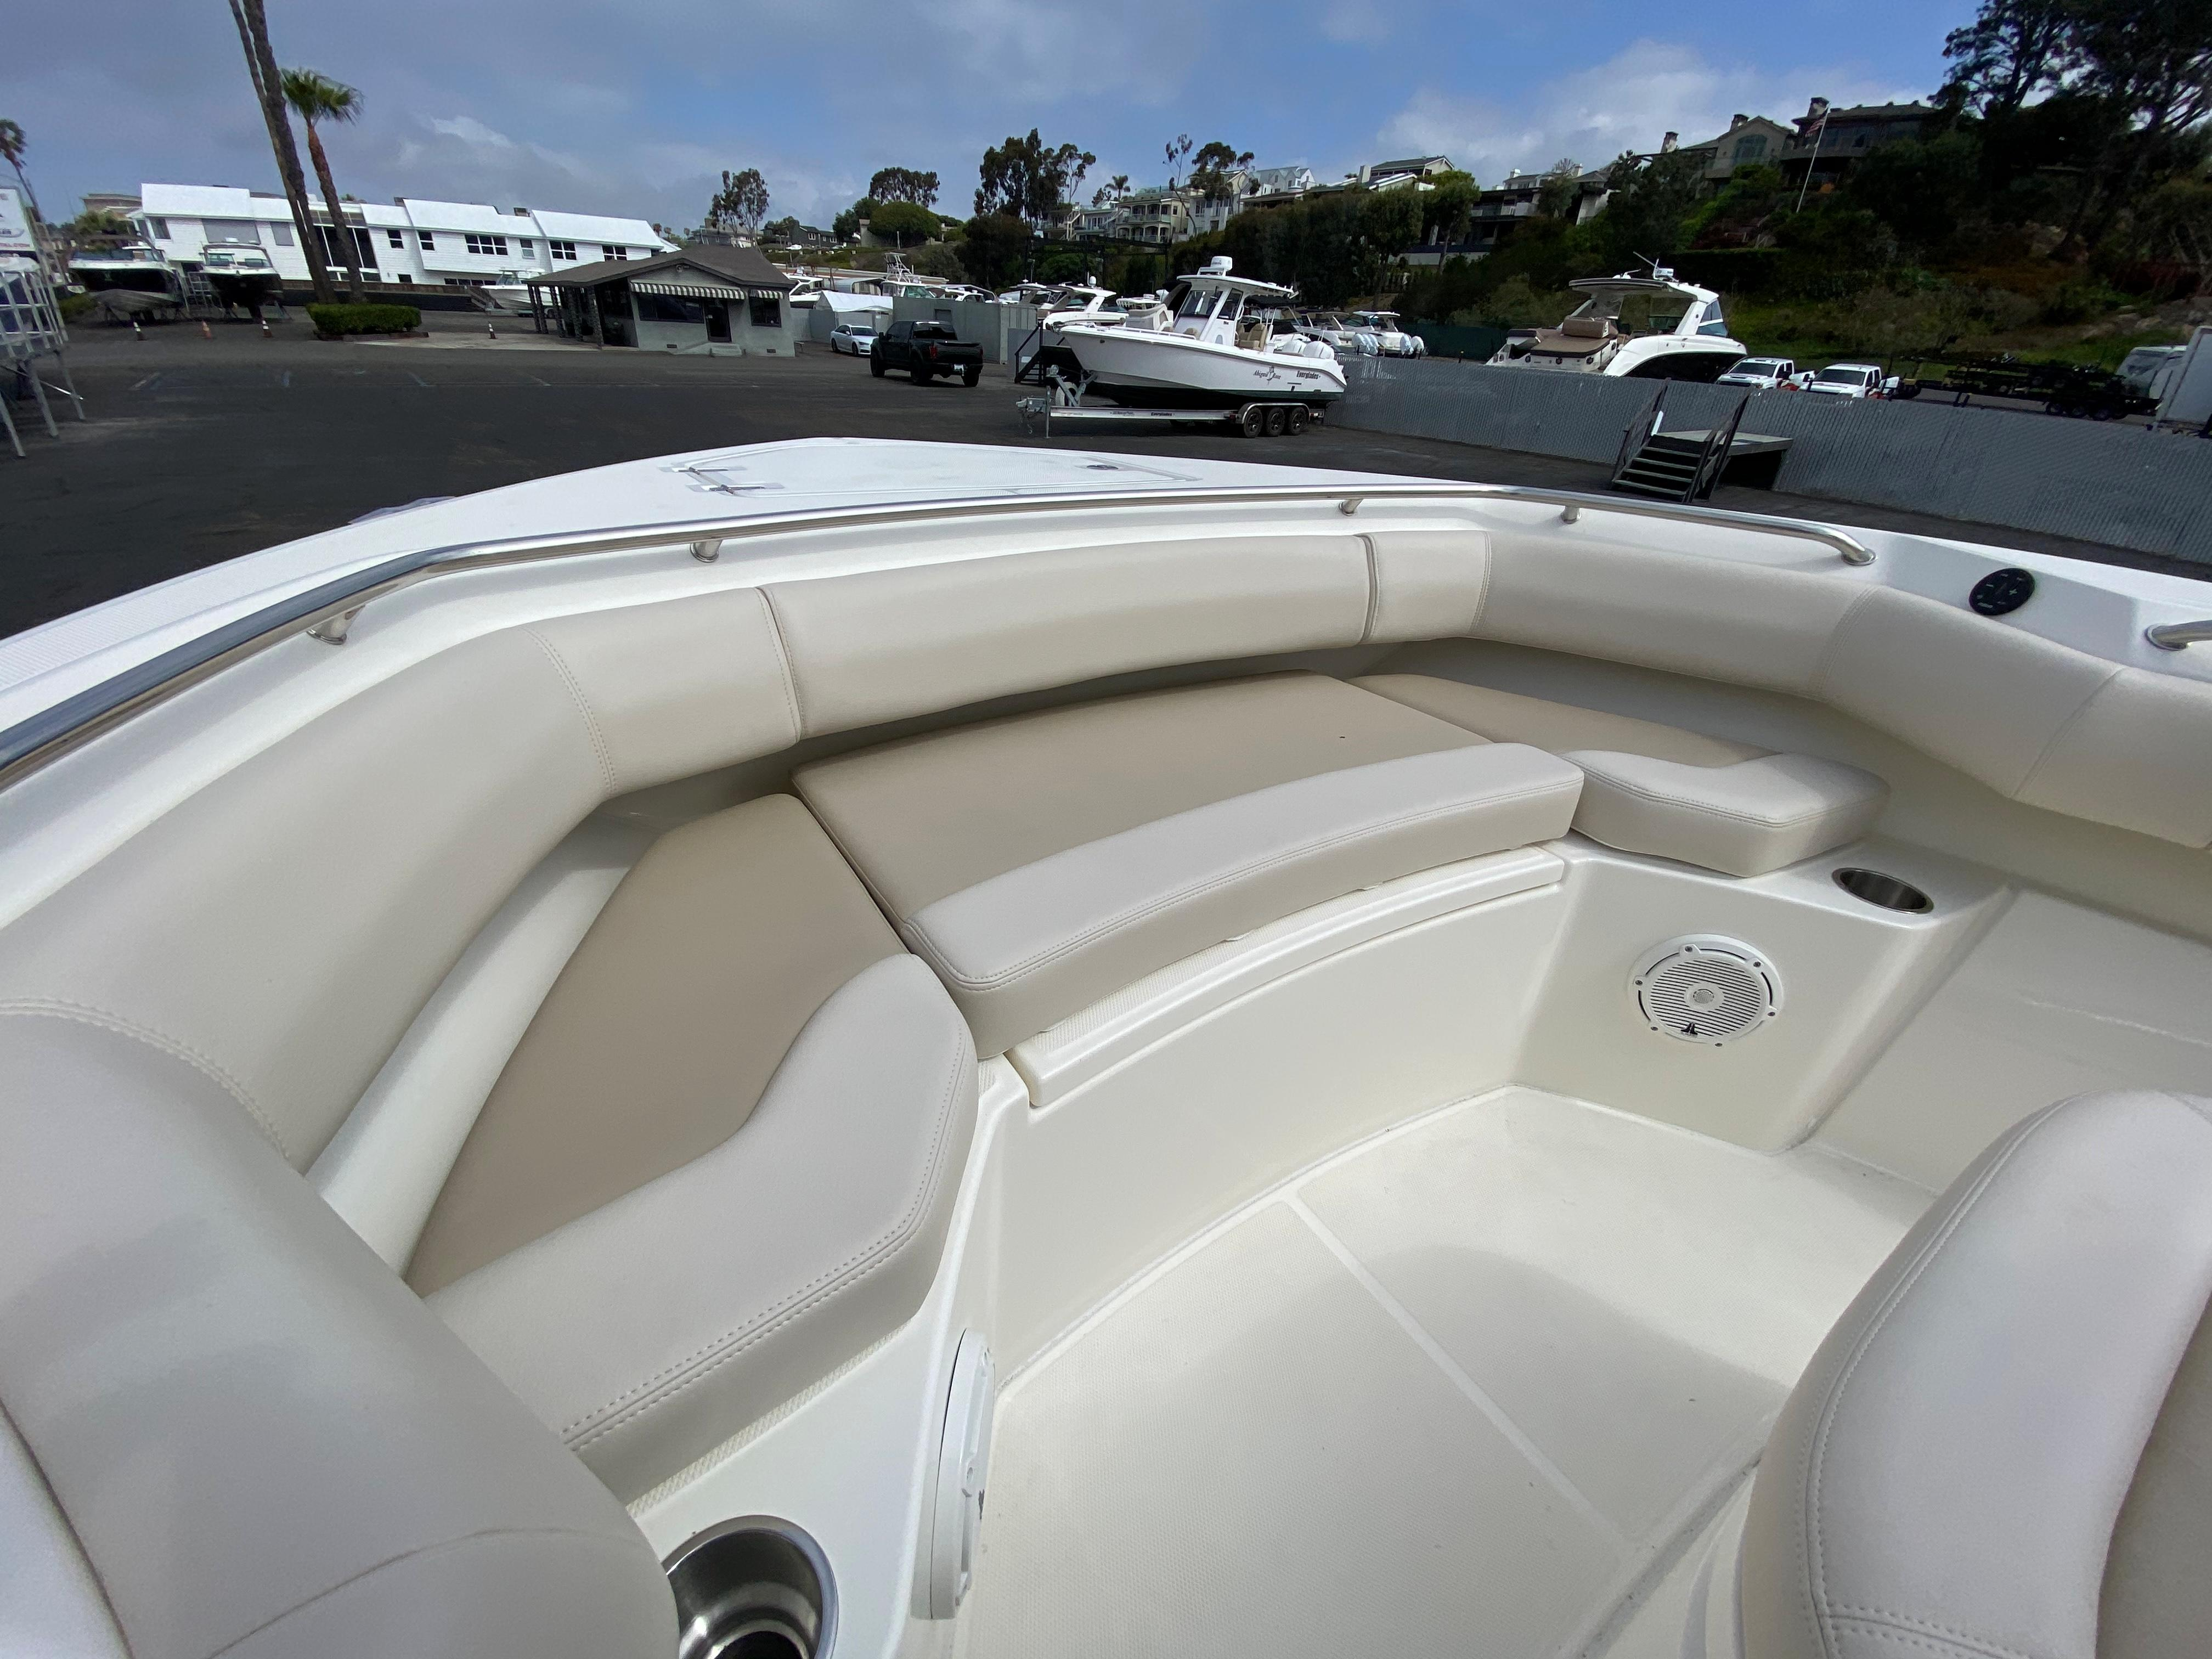 2021 Boston Whaler 280 Outrage #BW1954B inventory image at Sun Country Coastal in San Diego